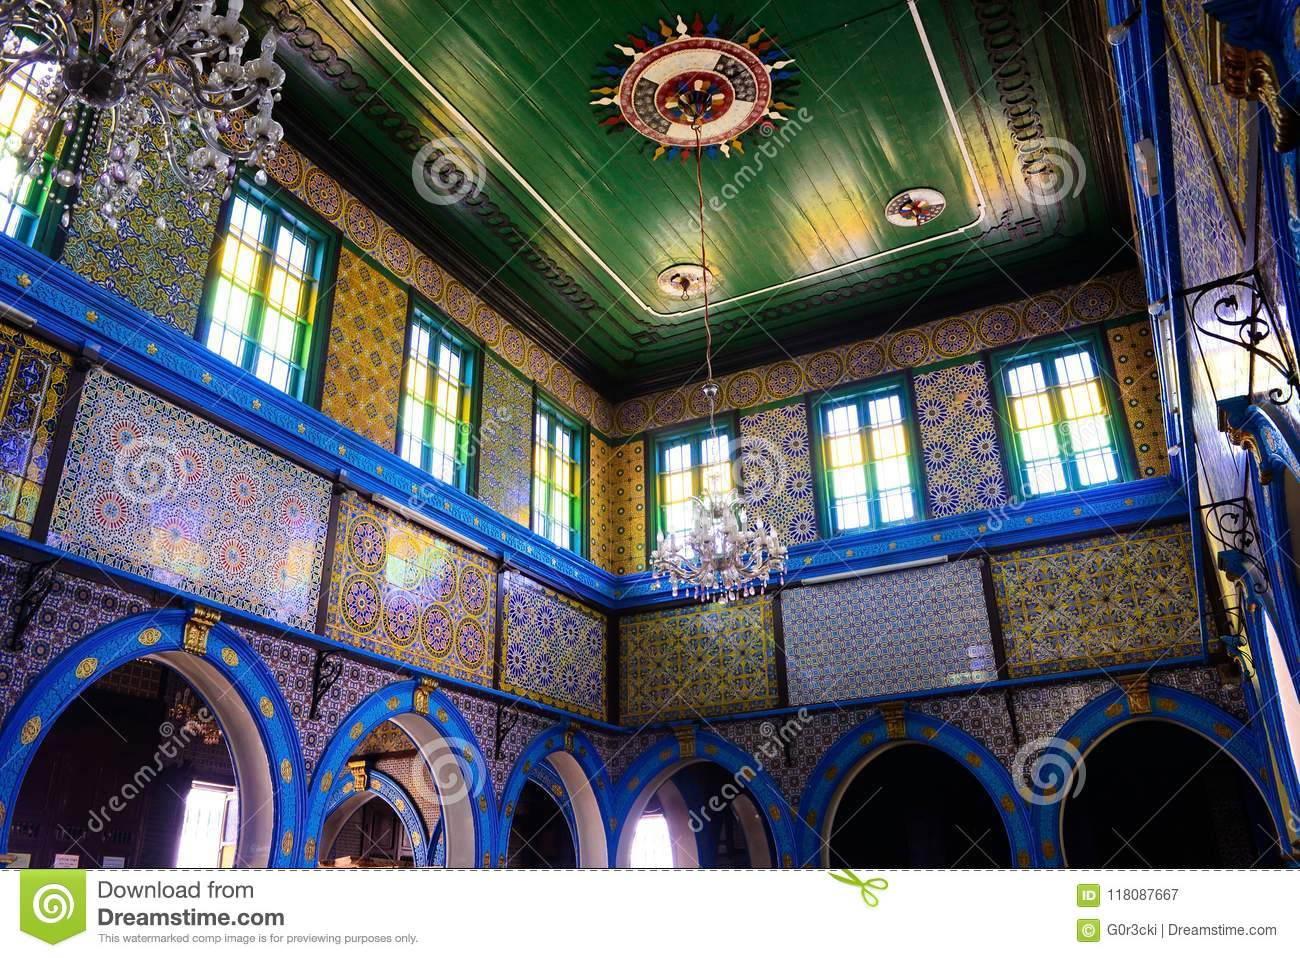 Tunisia, Synagogue Djerba Ghriba, Arabic and Colorful Patterns, Glazed Tiles Walls, Religion, Jewish Temple, Travel Africa